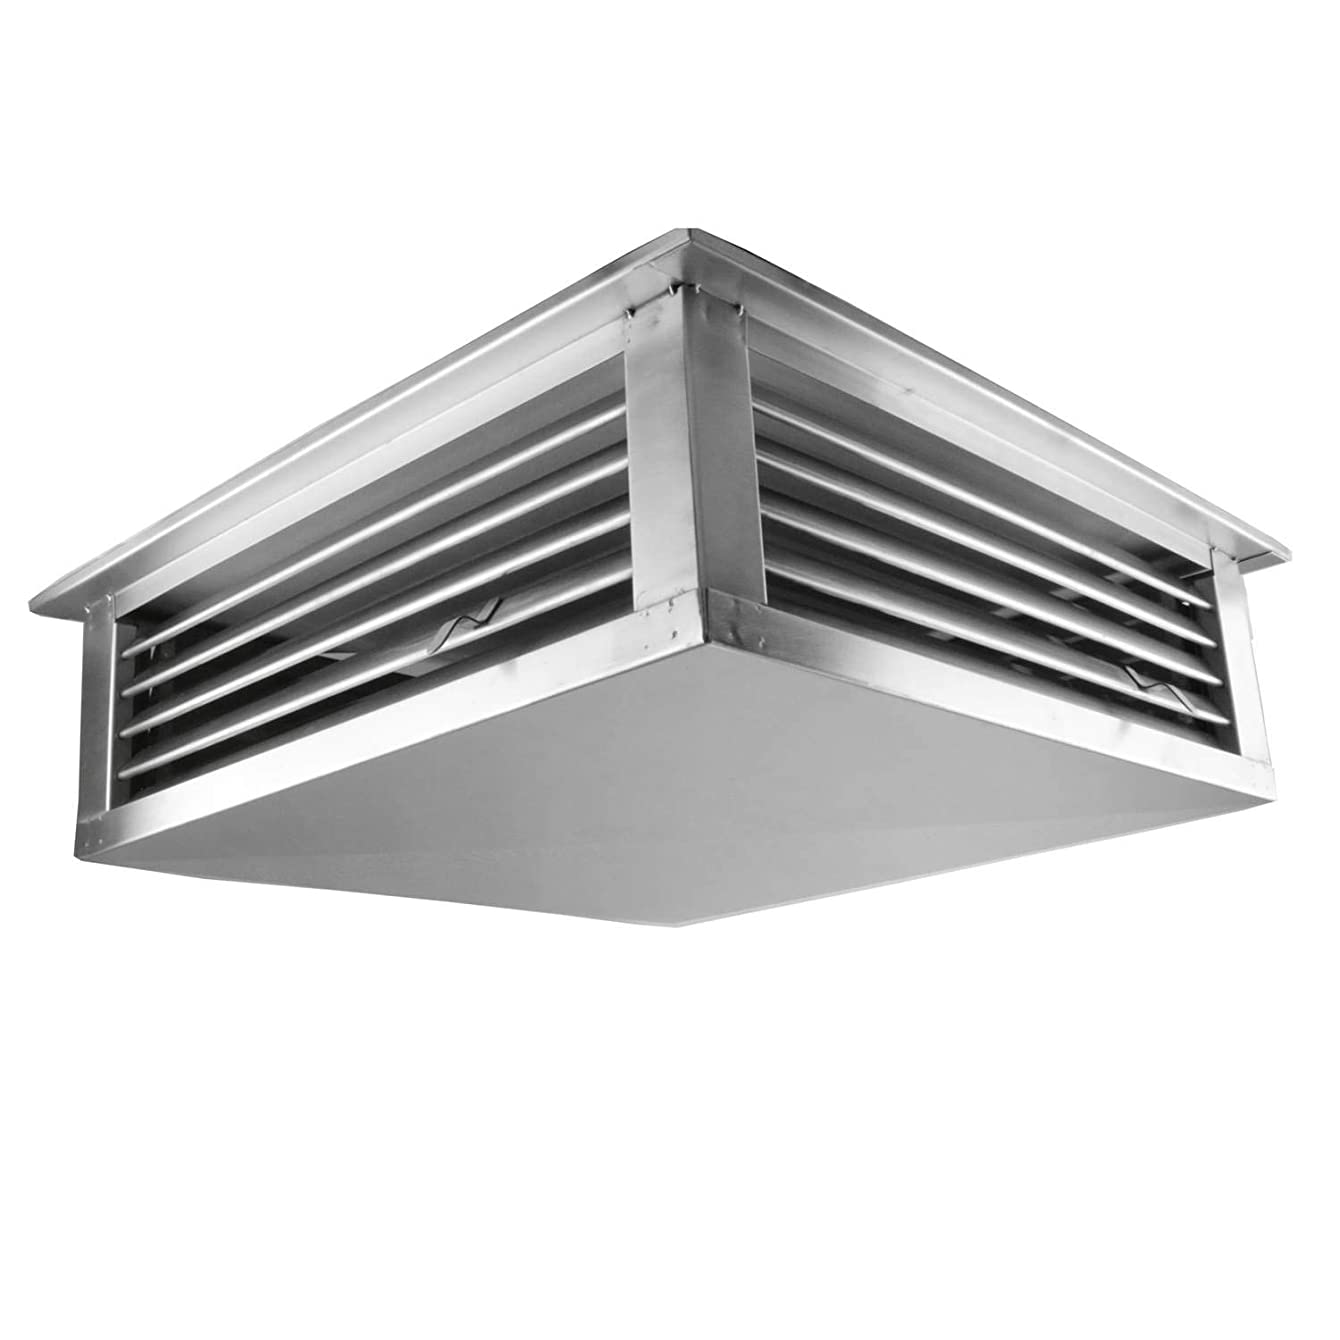 GSW DF-18S 18-Inch Stainless Steel 4-Way Adjustable Metal Diffuser for Evaporative/Swamp Cooler